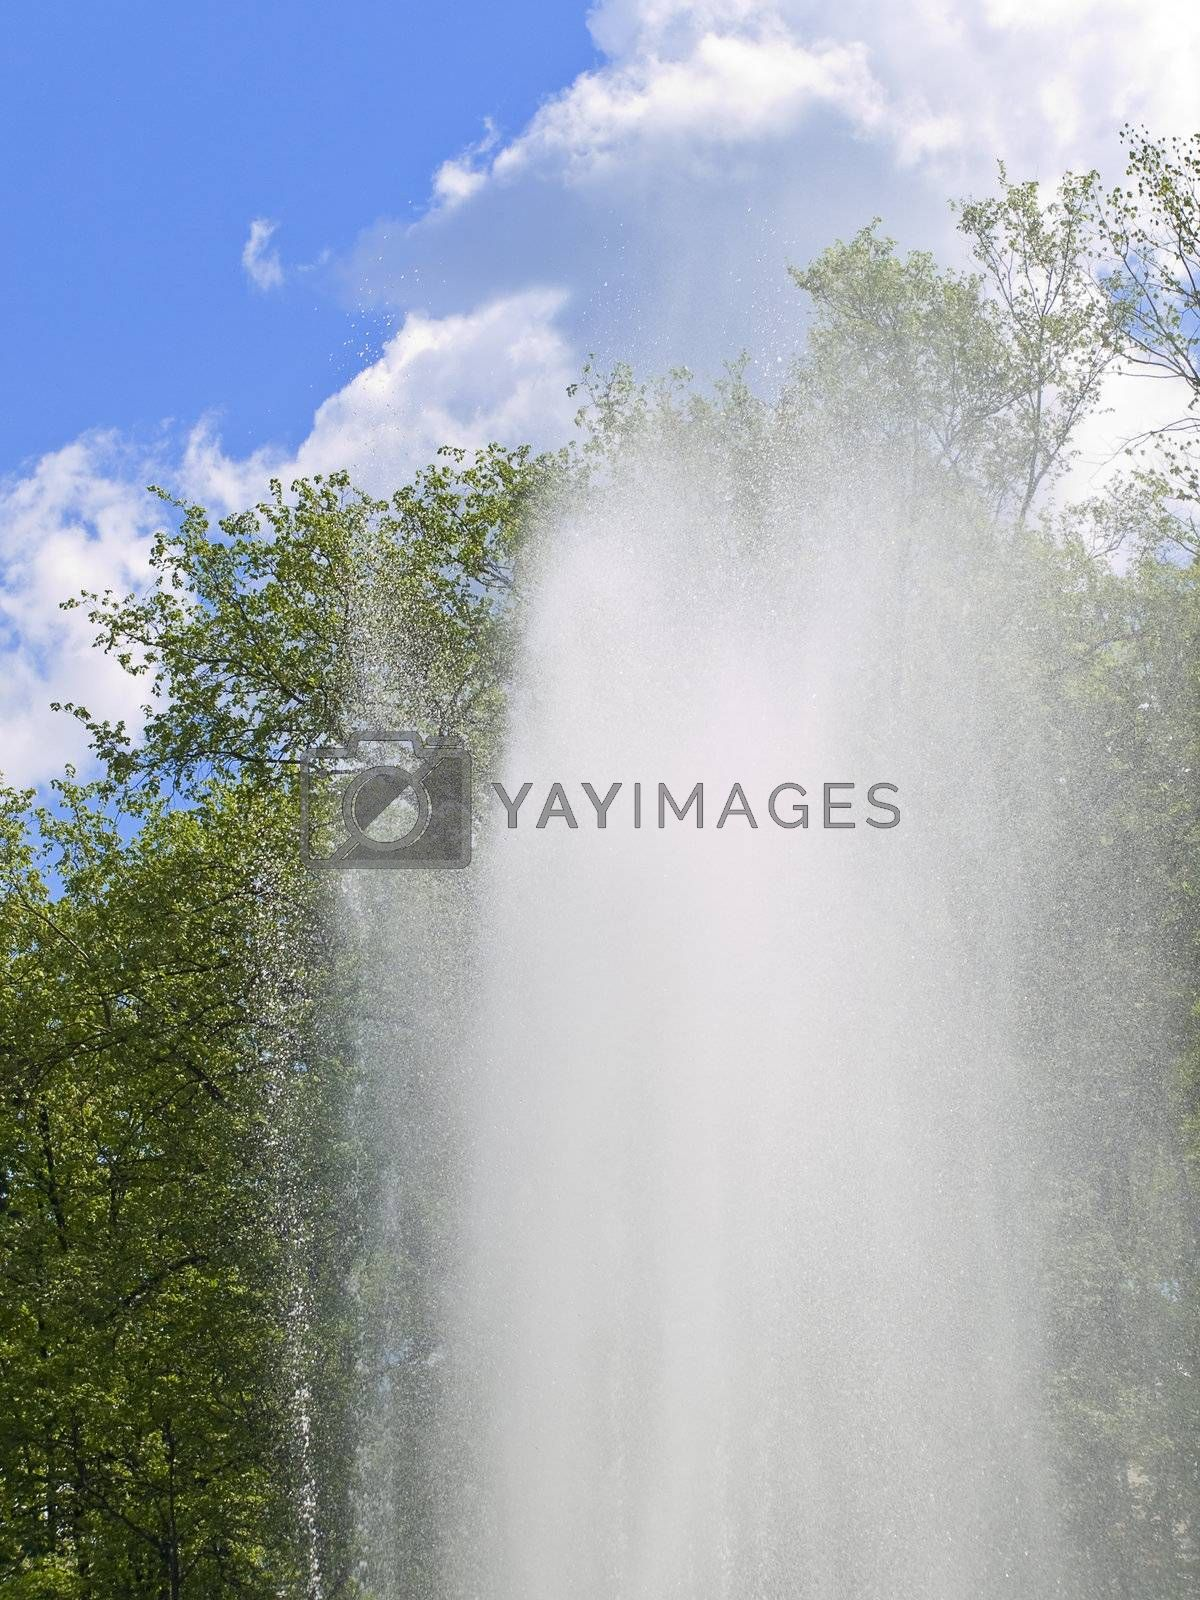 fountain against the blue sky with clouds and green trees